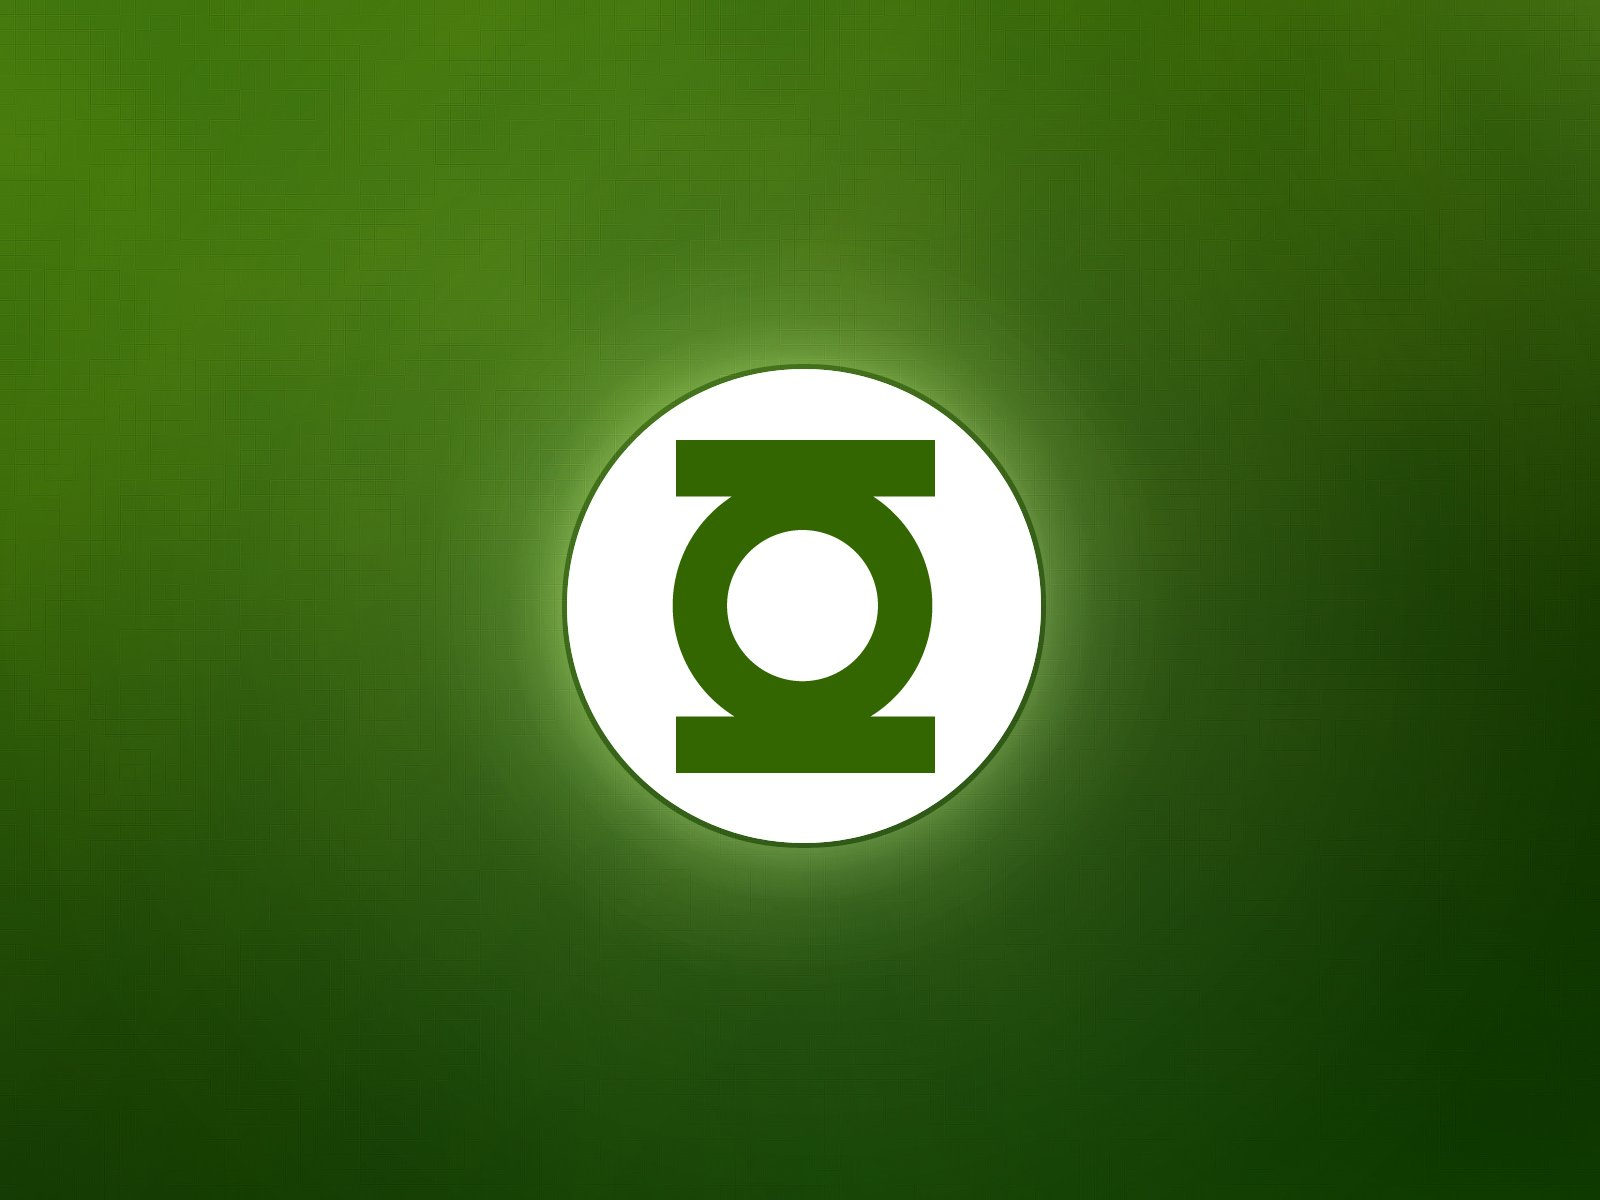 269 Green Lantern Hd Wallpapers Background Images Wallpaper Abyss